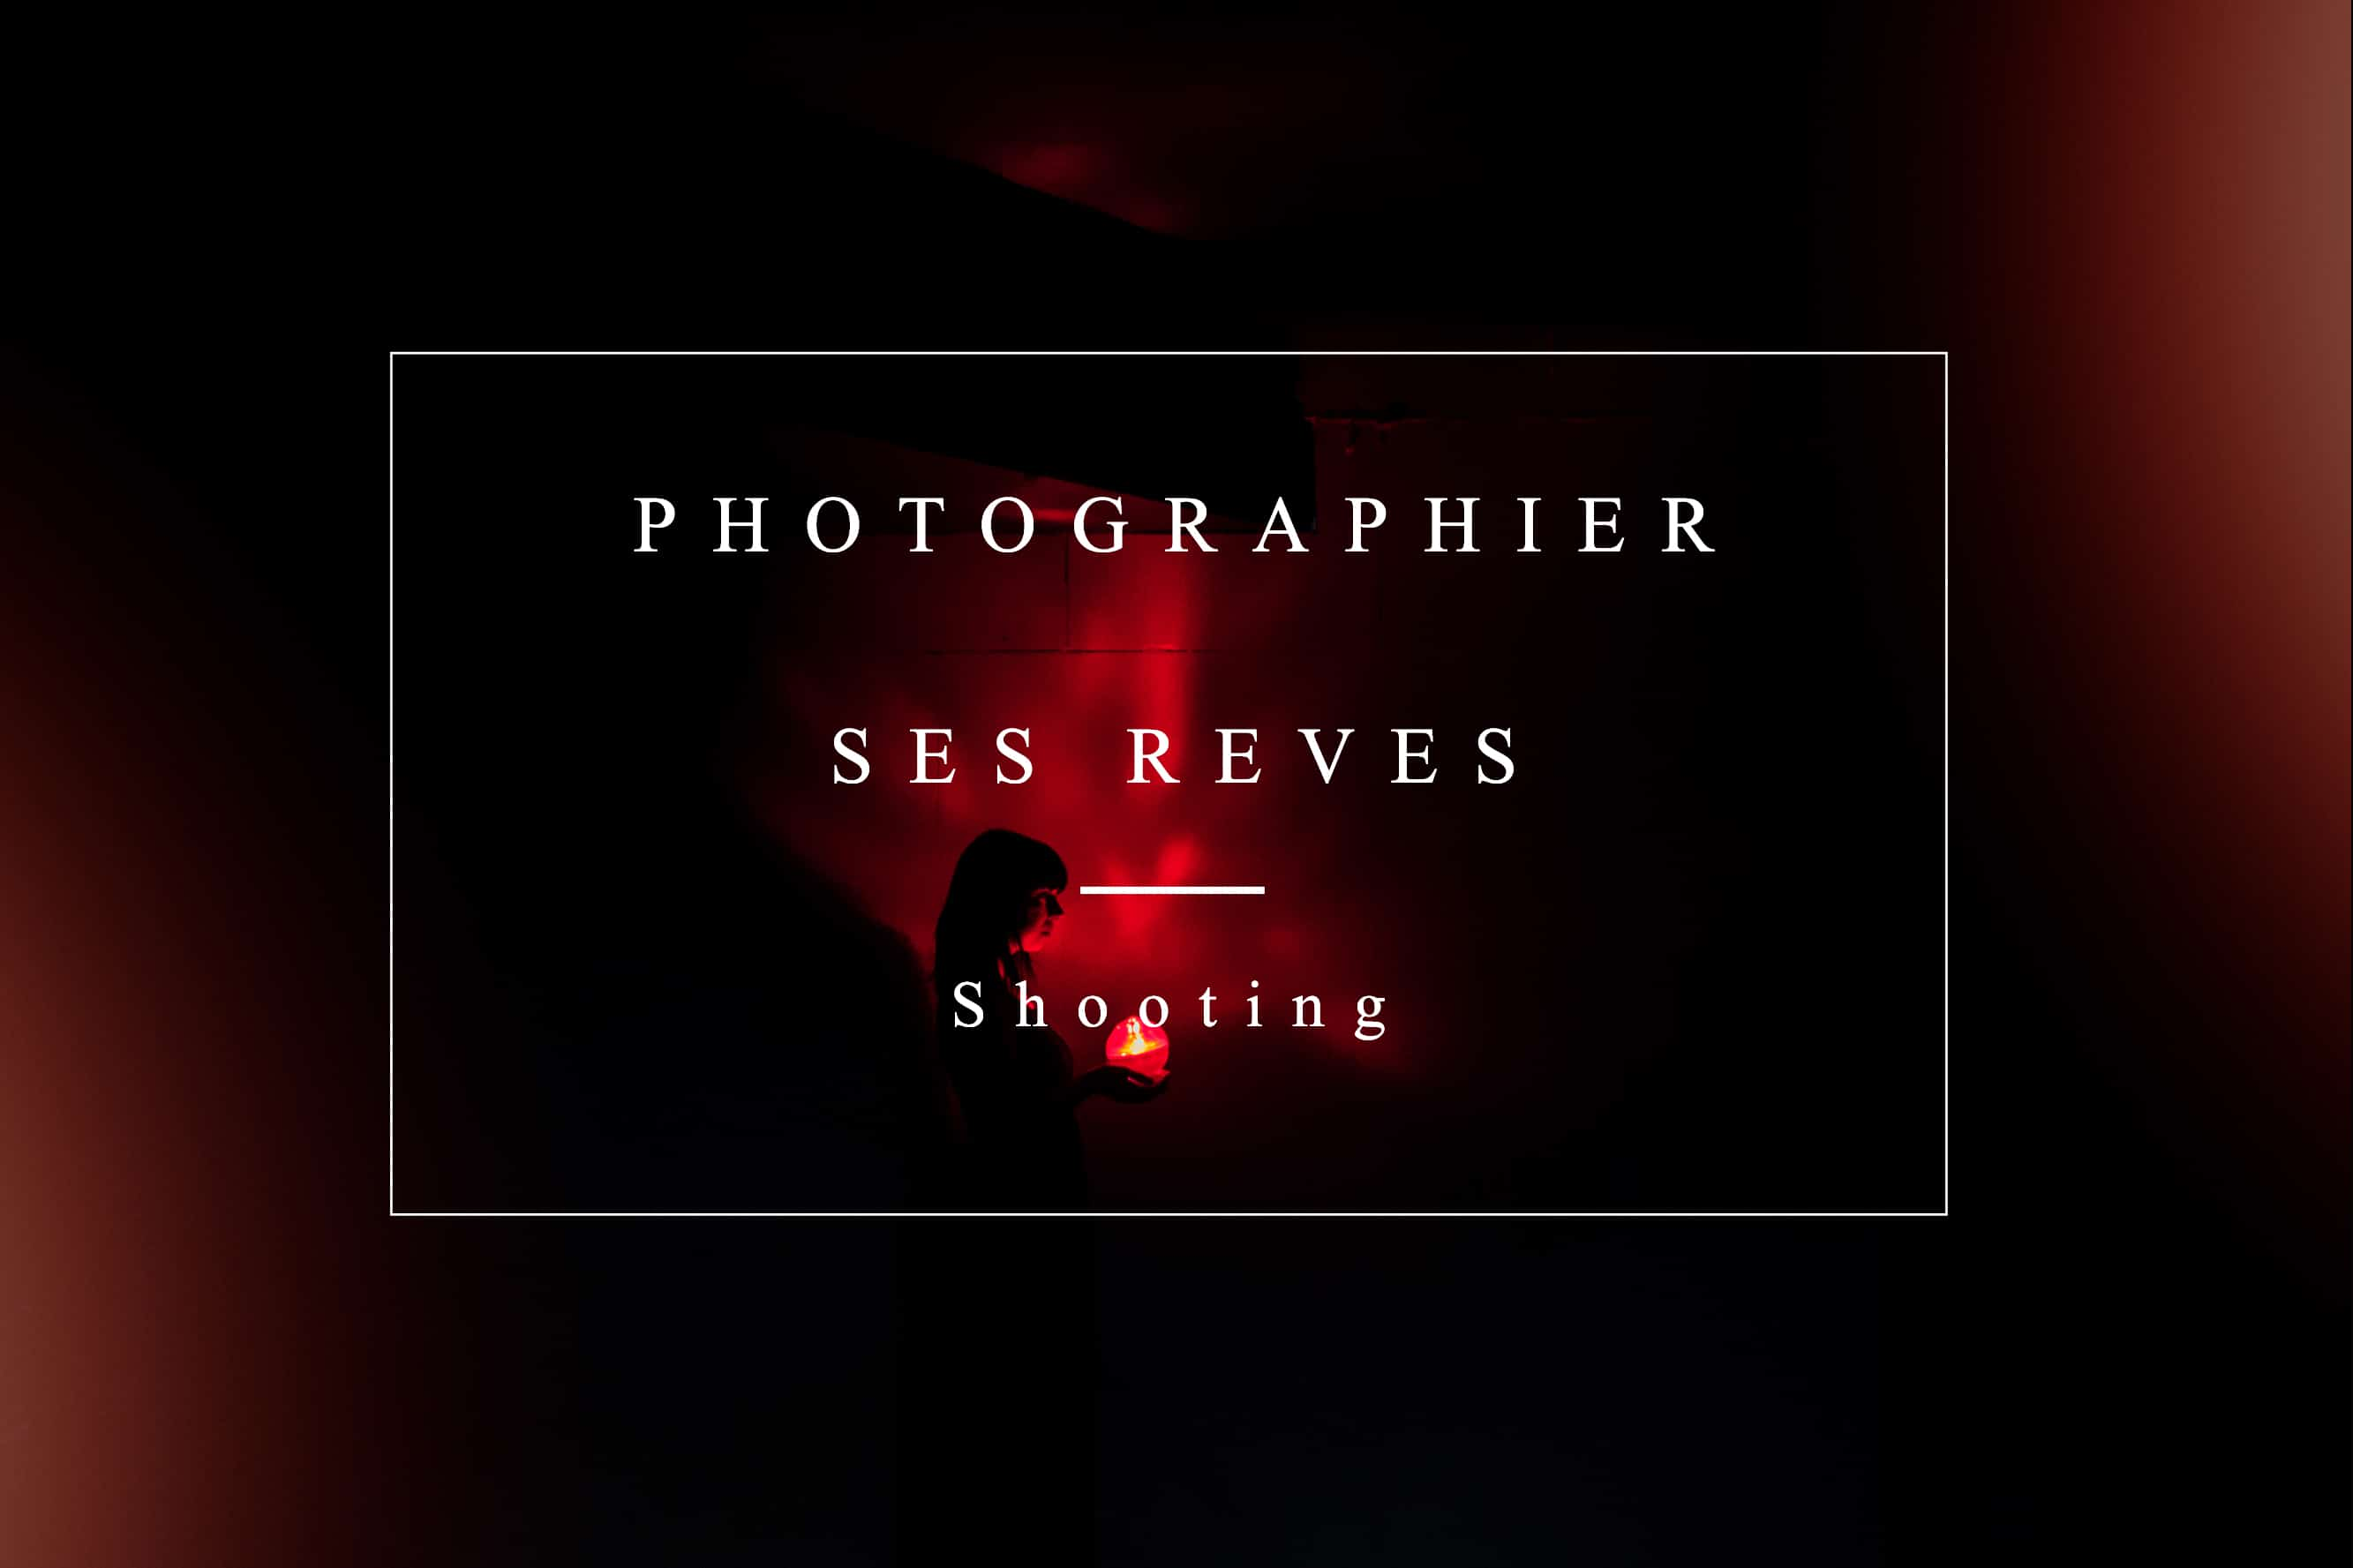 photographier ses reves